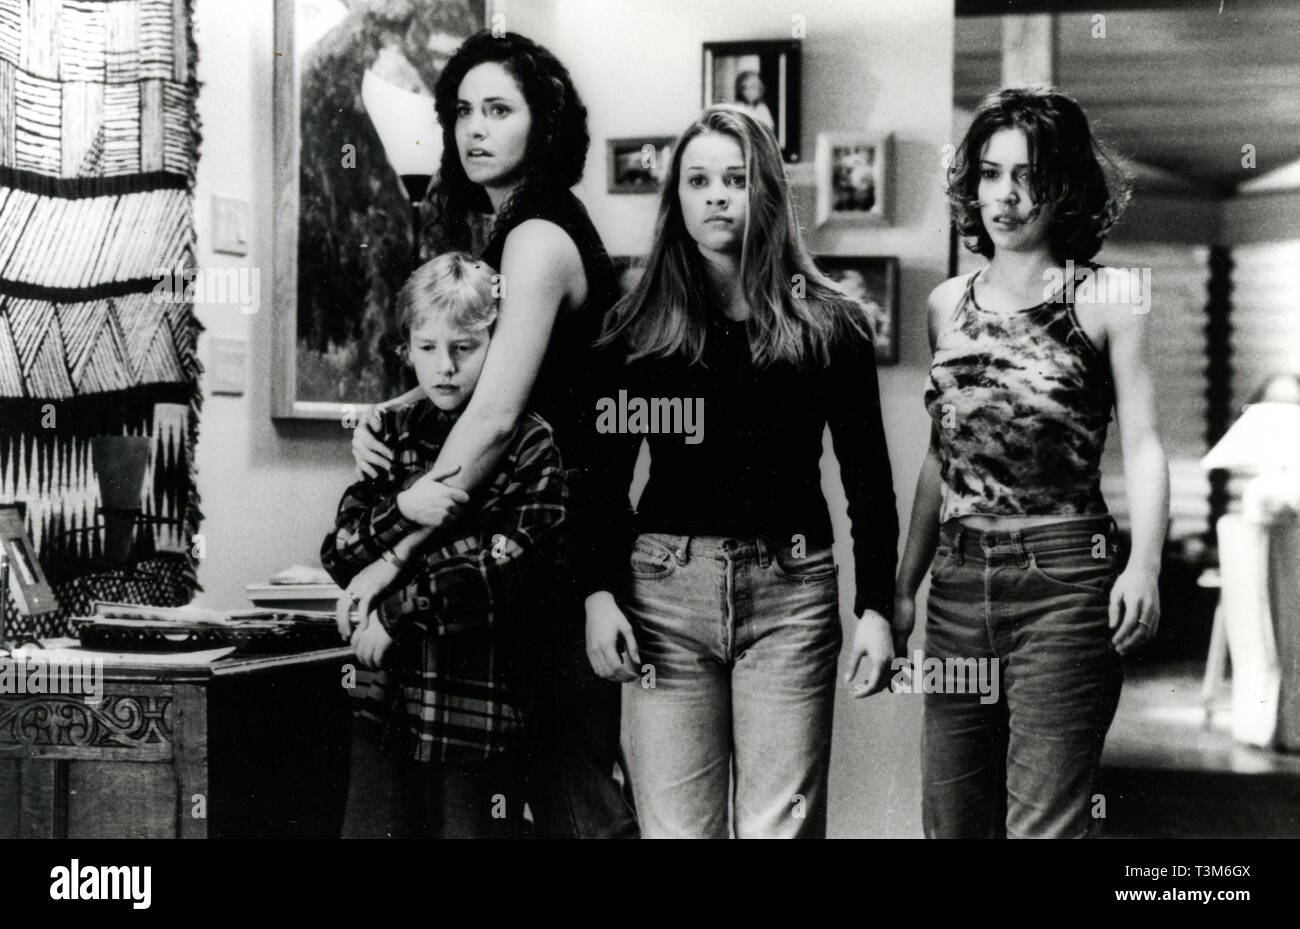 Amy Brenneman Reese Witherspoon And Alyssa Milano In The Movie Fear 1996 Stock Photo Alamy